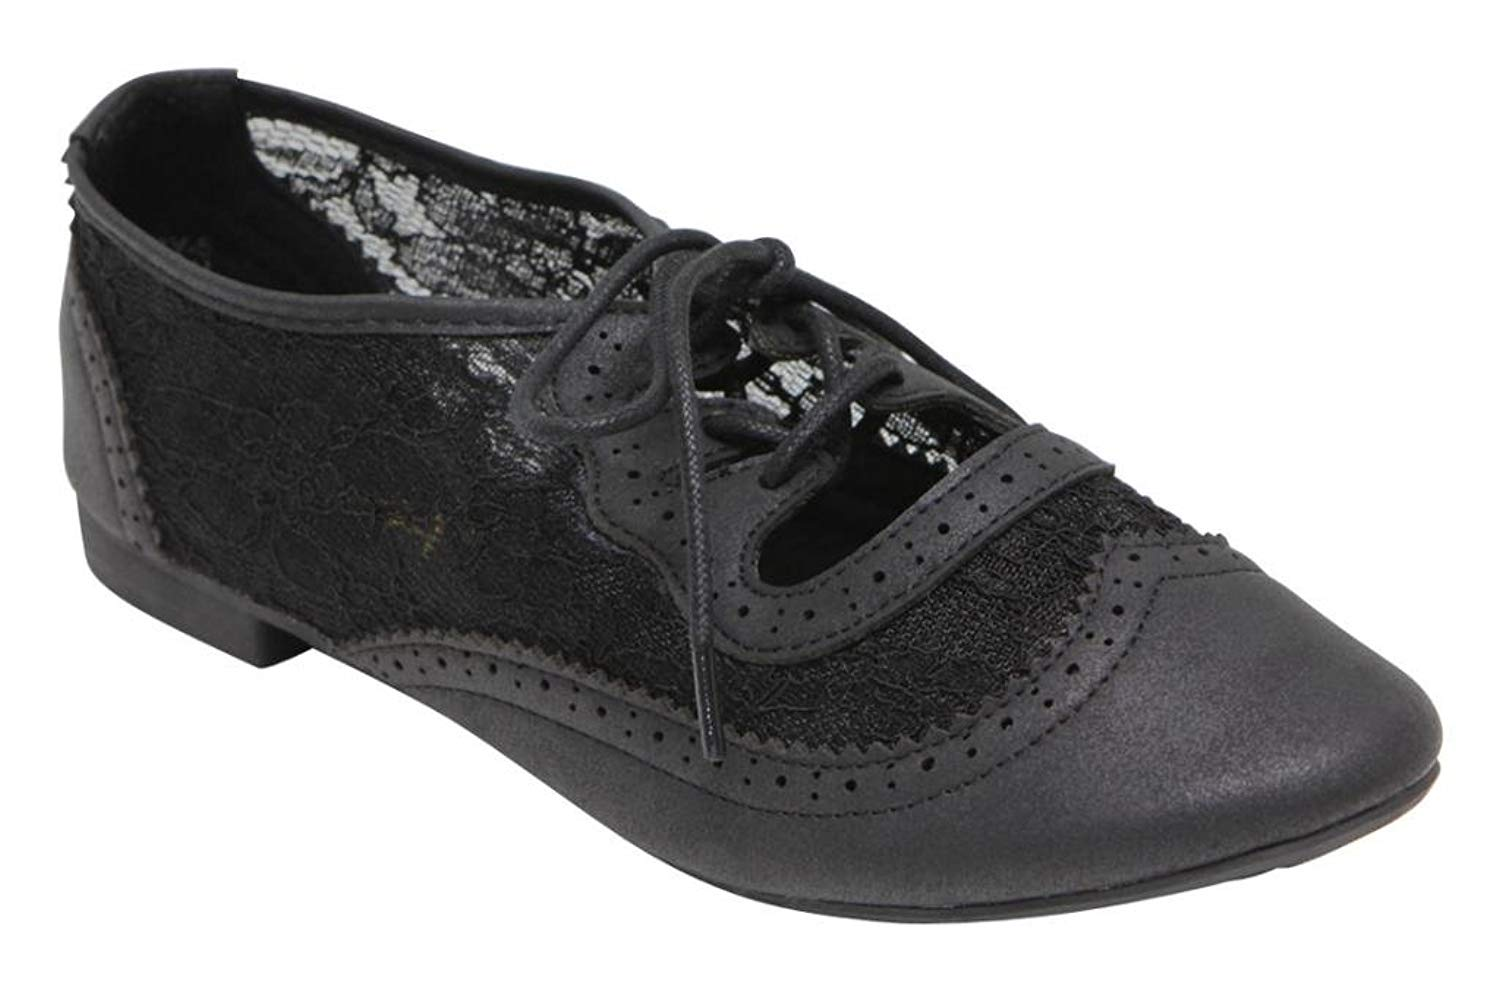 ANNA Rosy-5 women's fashion spring athletic lace up hollow cut out perforated paisley oxfords Black 7.5